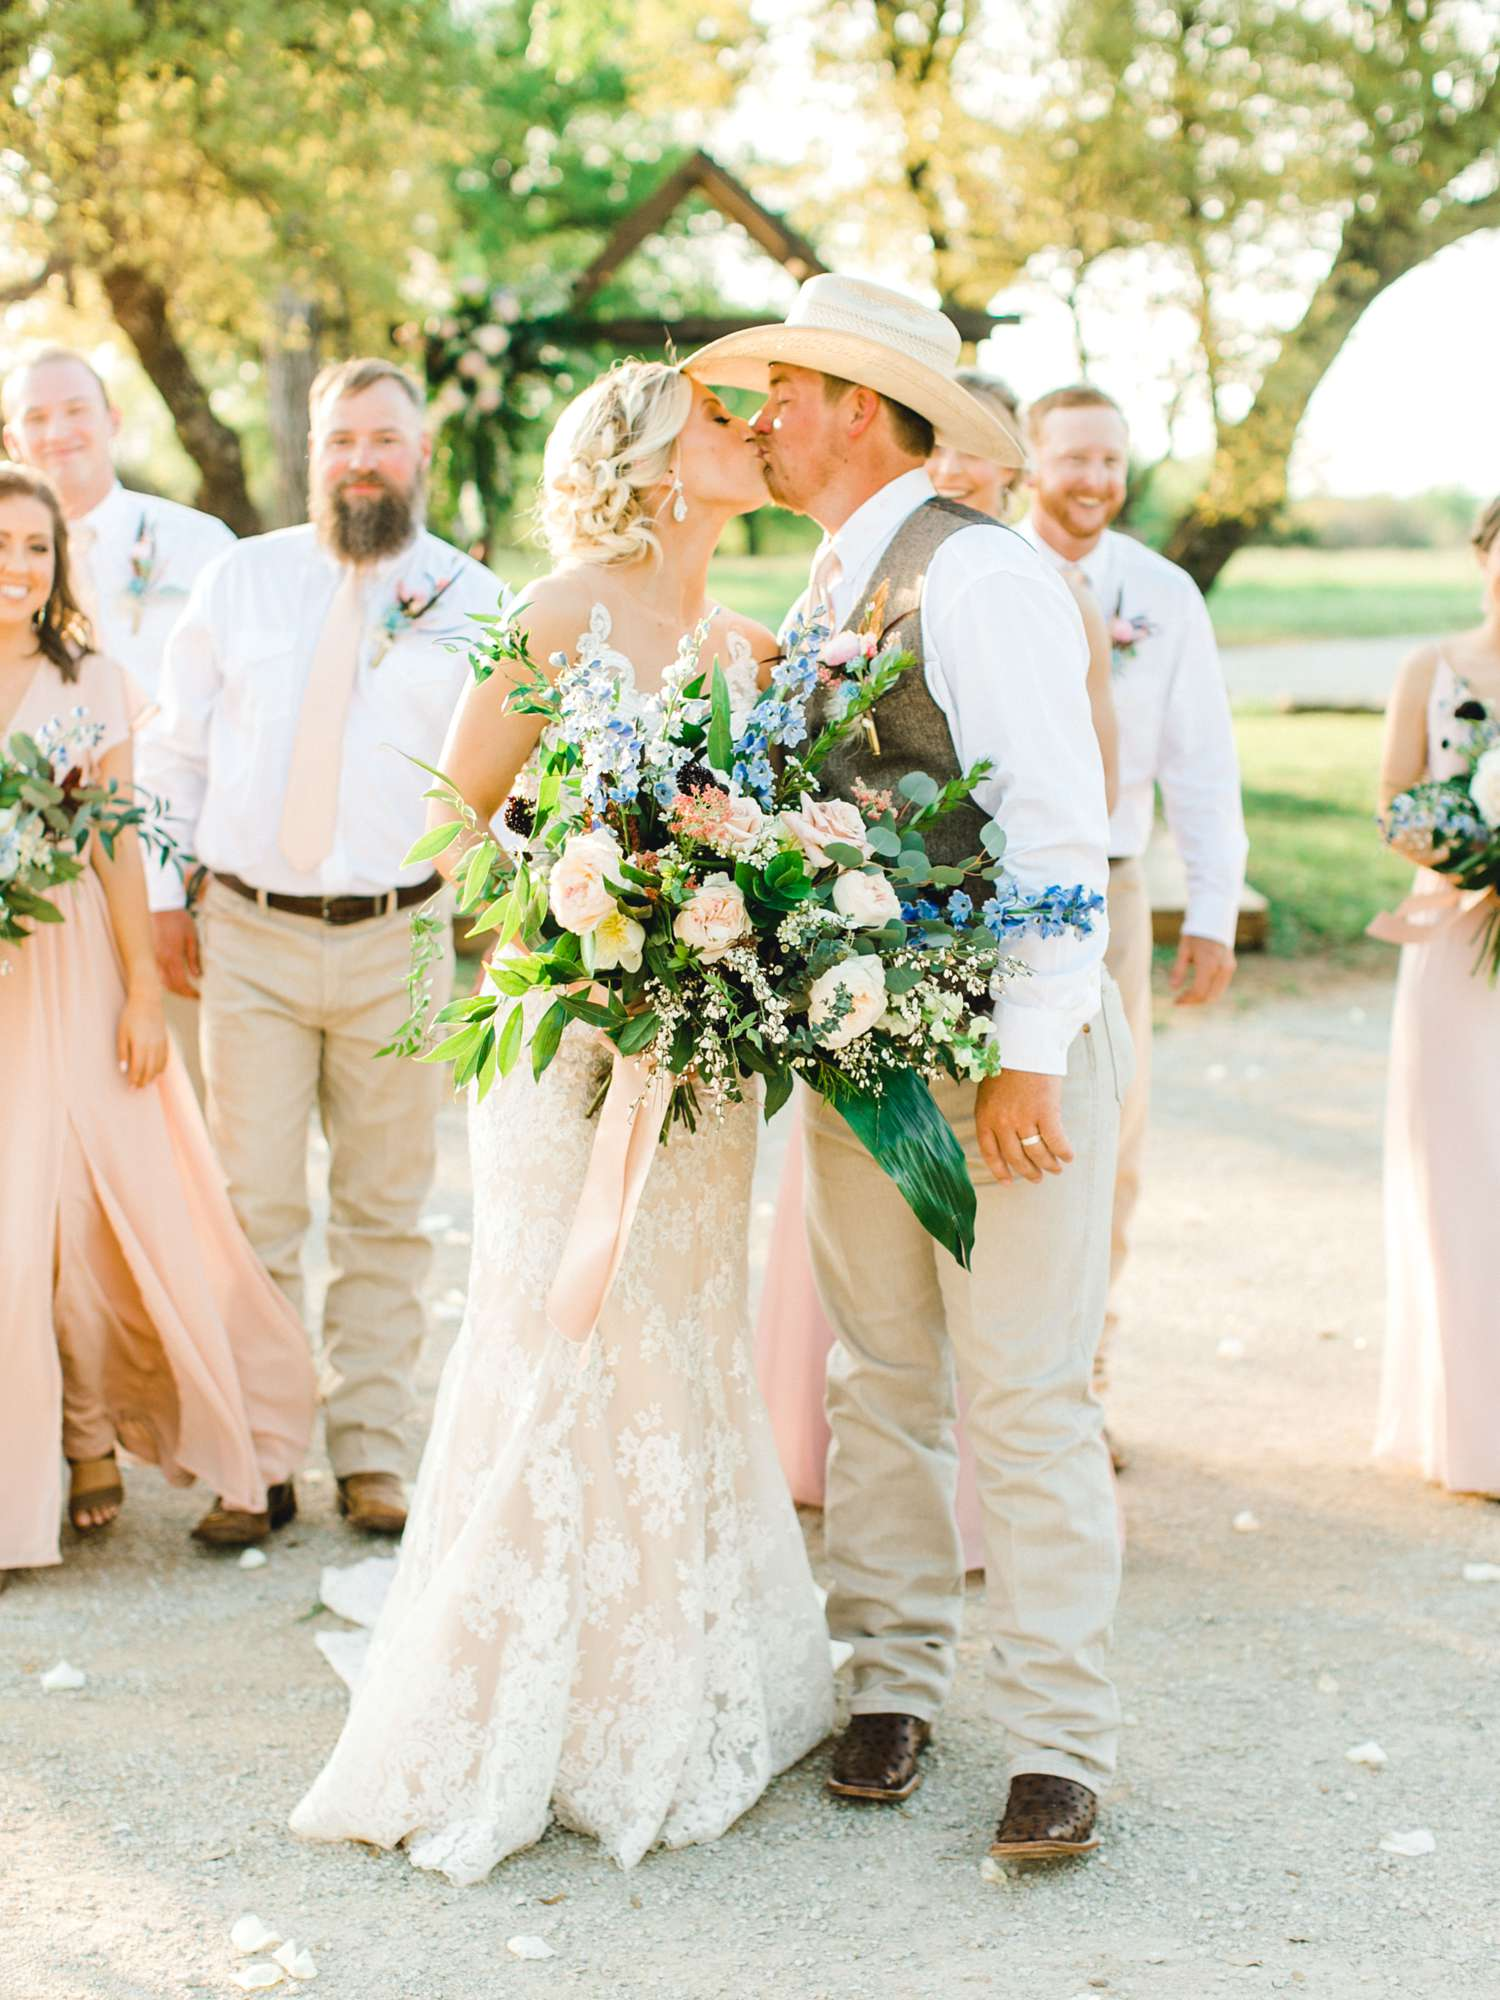 SARAH+TREVOR+BADGETT+SPARROW+CREEK+GRAHAM+TEXAS+ALLEEJ+WEDDINGS_0089.jpg